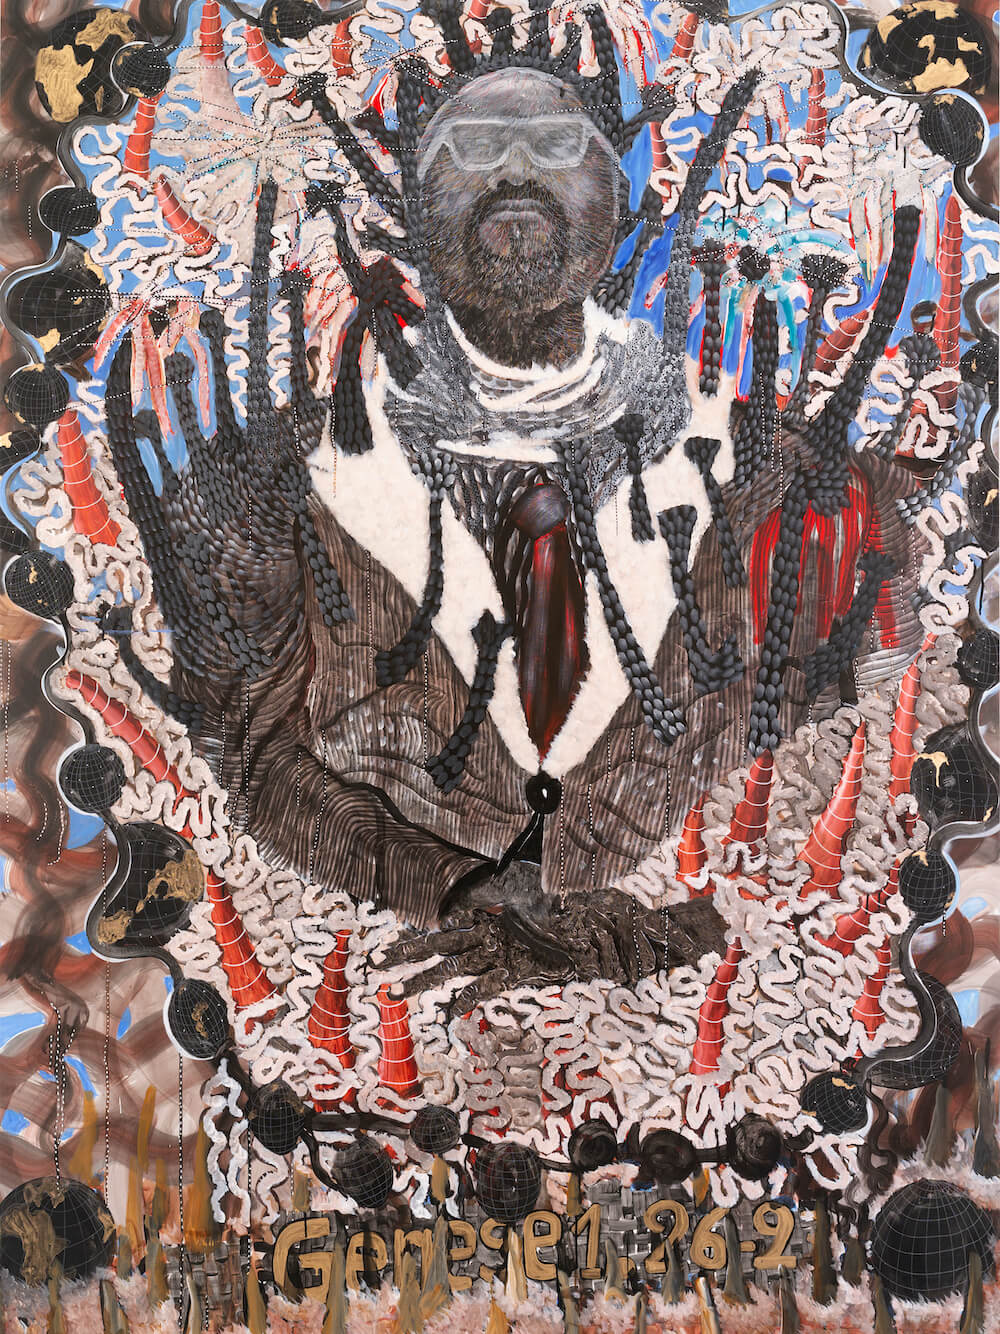 omar ba, templon gallery, art and about africa, contemporary african art, artmap, african art map, art map africa